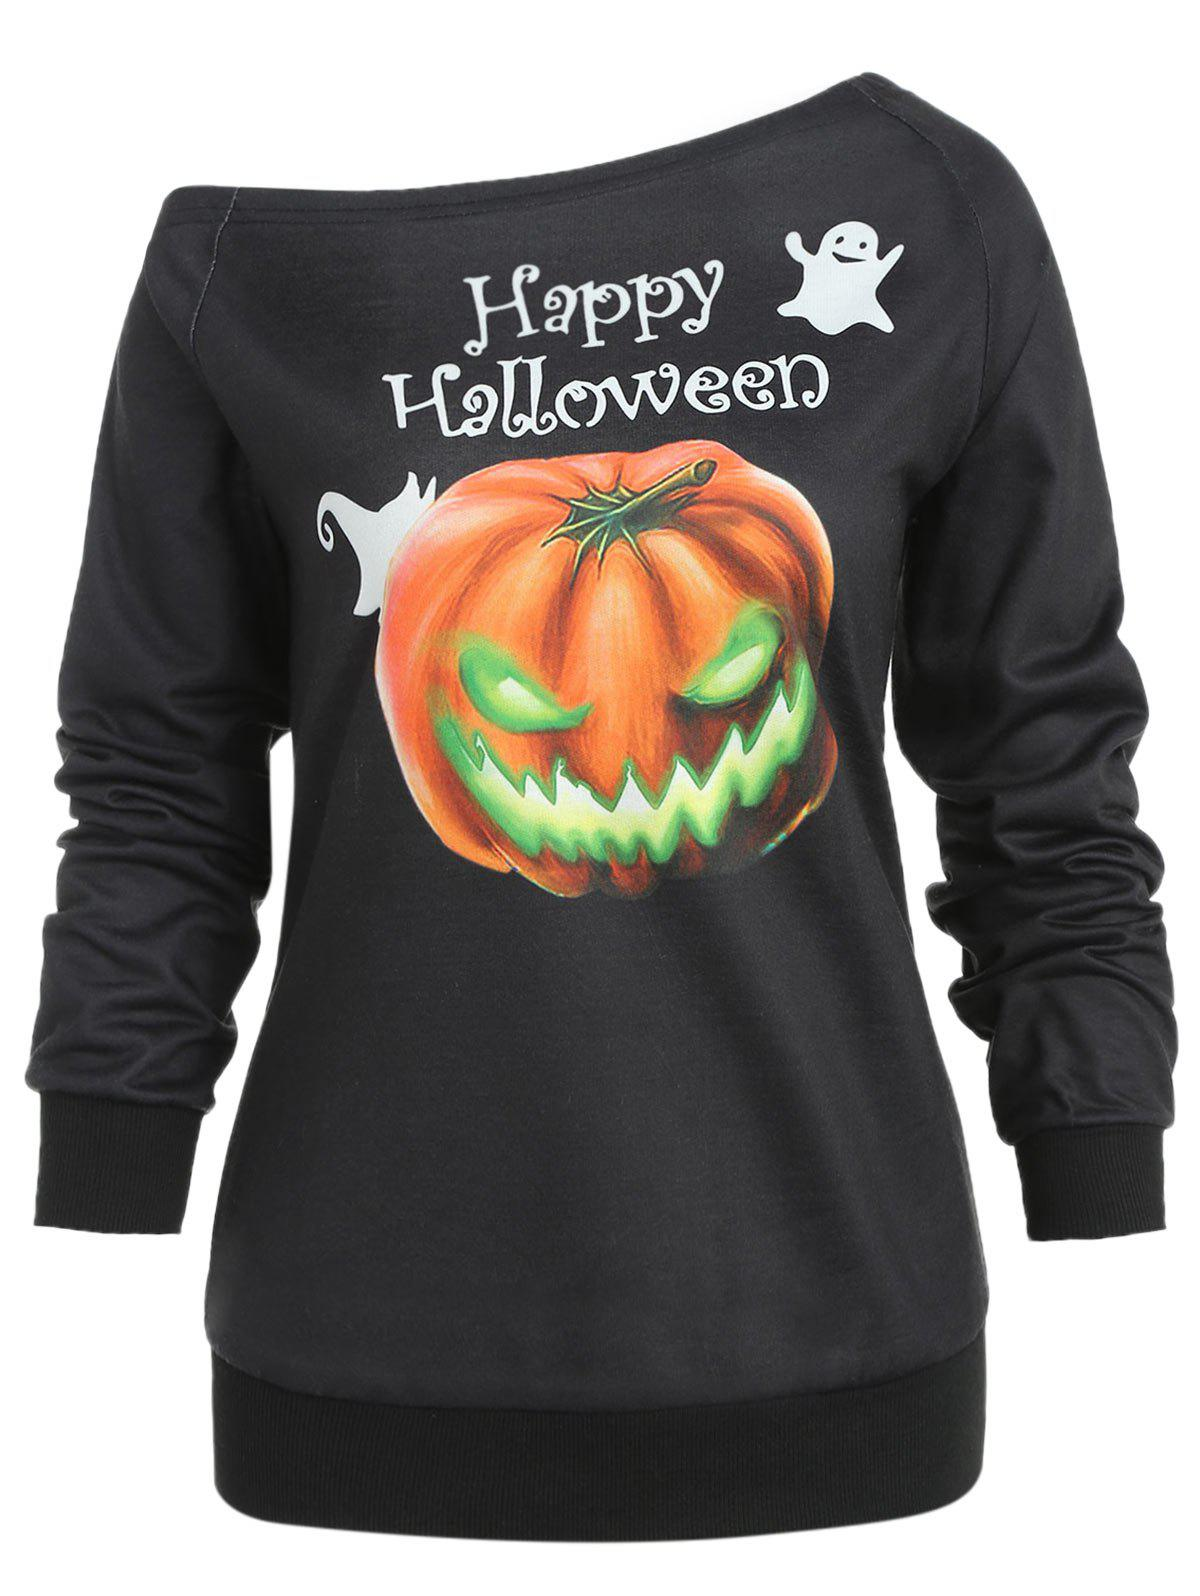 Hallowmas One Shoulder Sweatshirt - BLACK XL